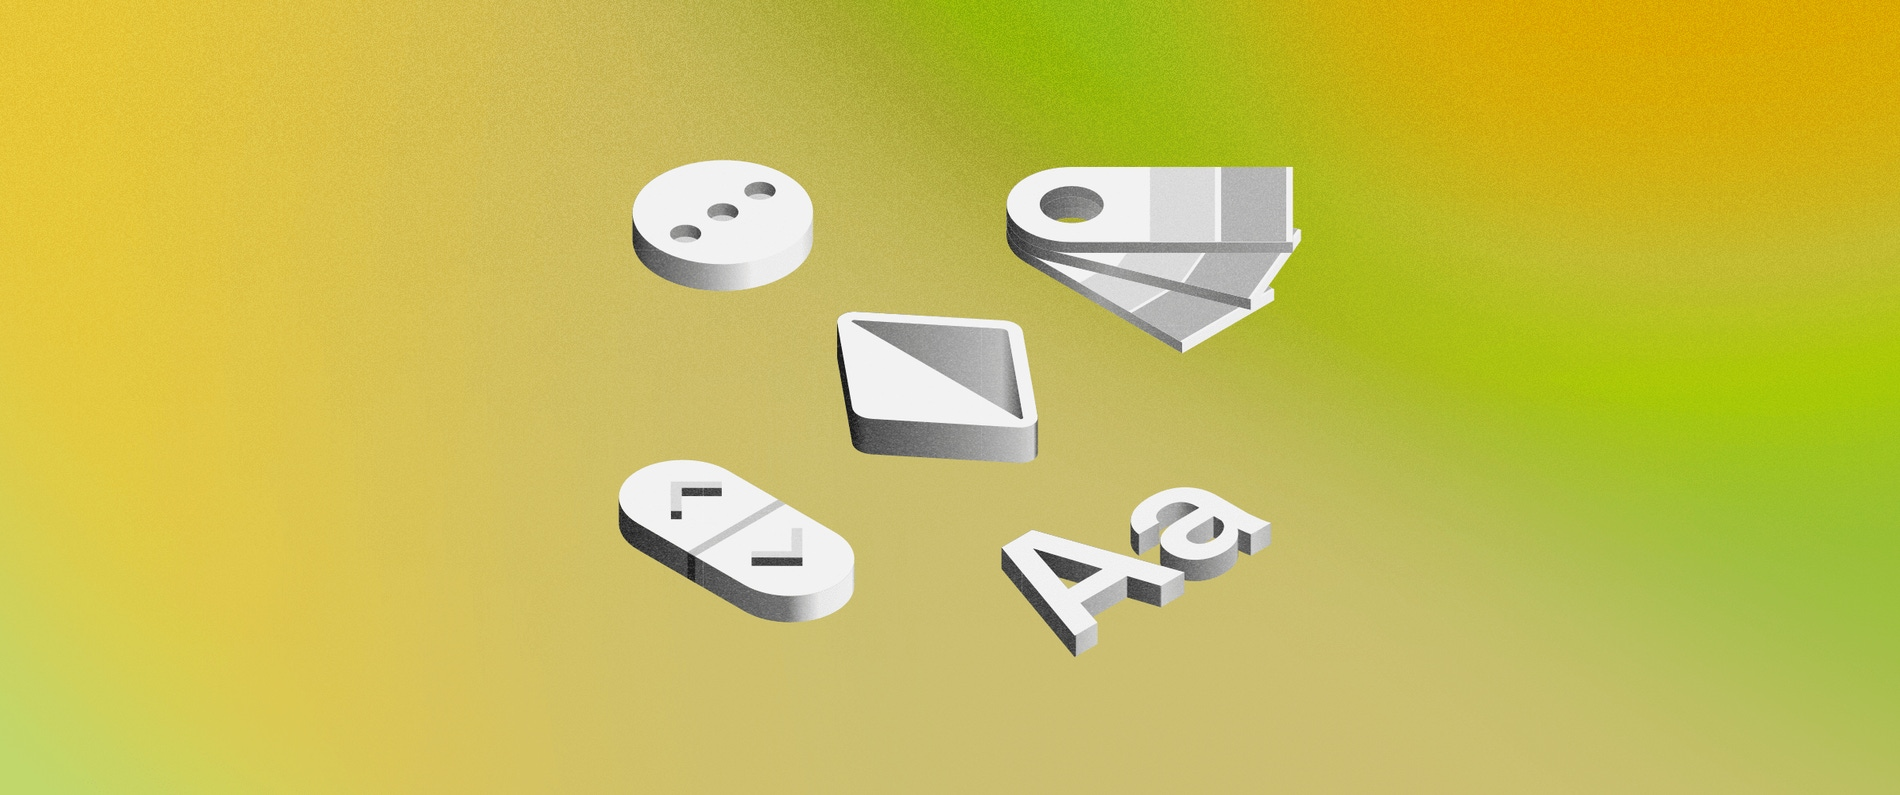 An illustration showing different isometric icons on a green background